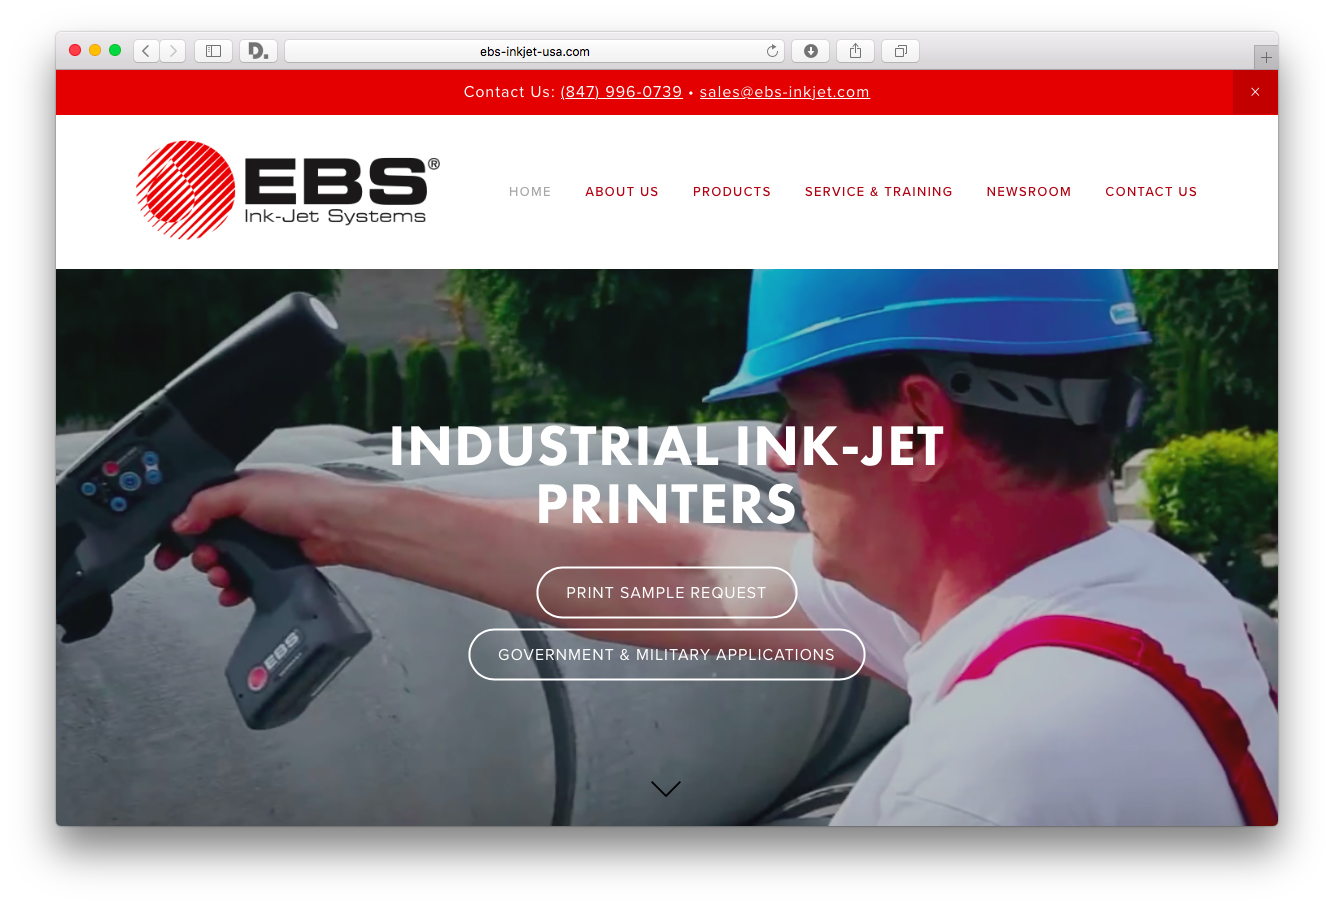 Ebs Ink Jet Systems Manufacturer Of Contact Free